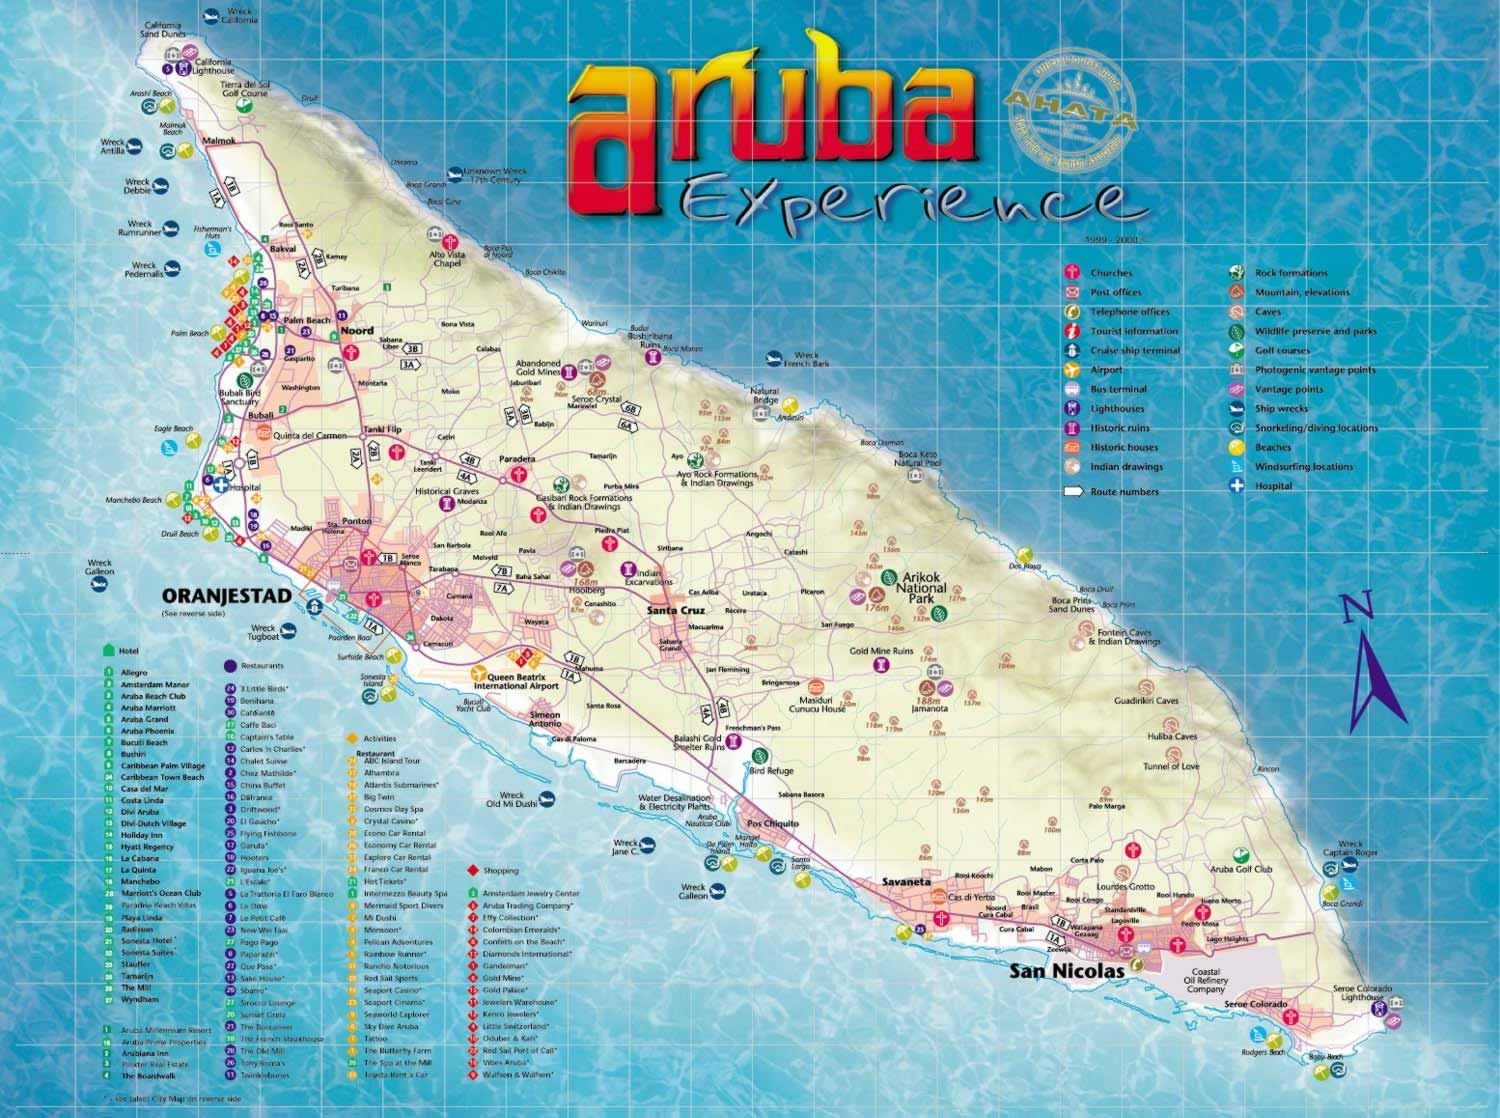 Aruba, Aruba - Detailed town/city map free download | Aruba in 2019 ...